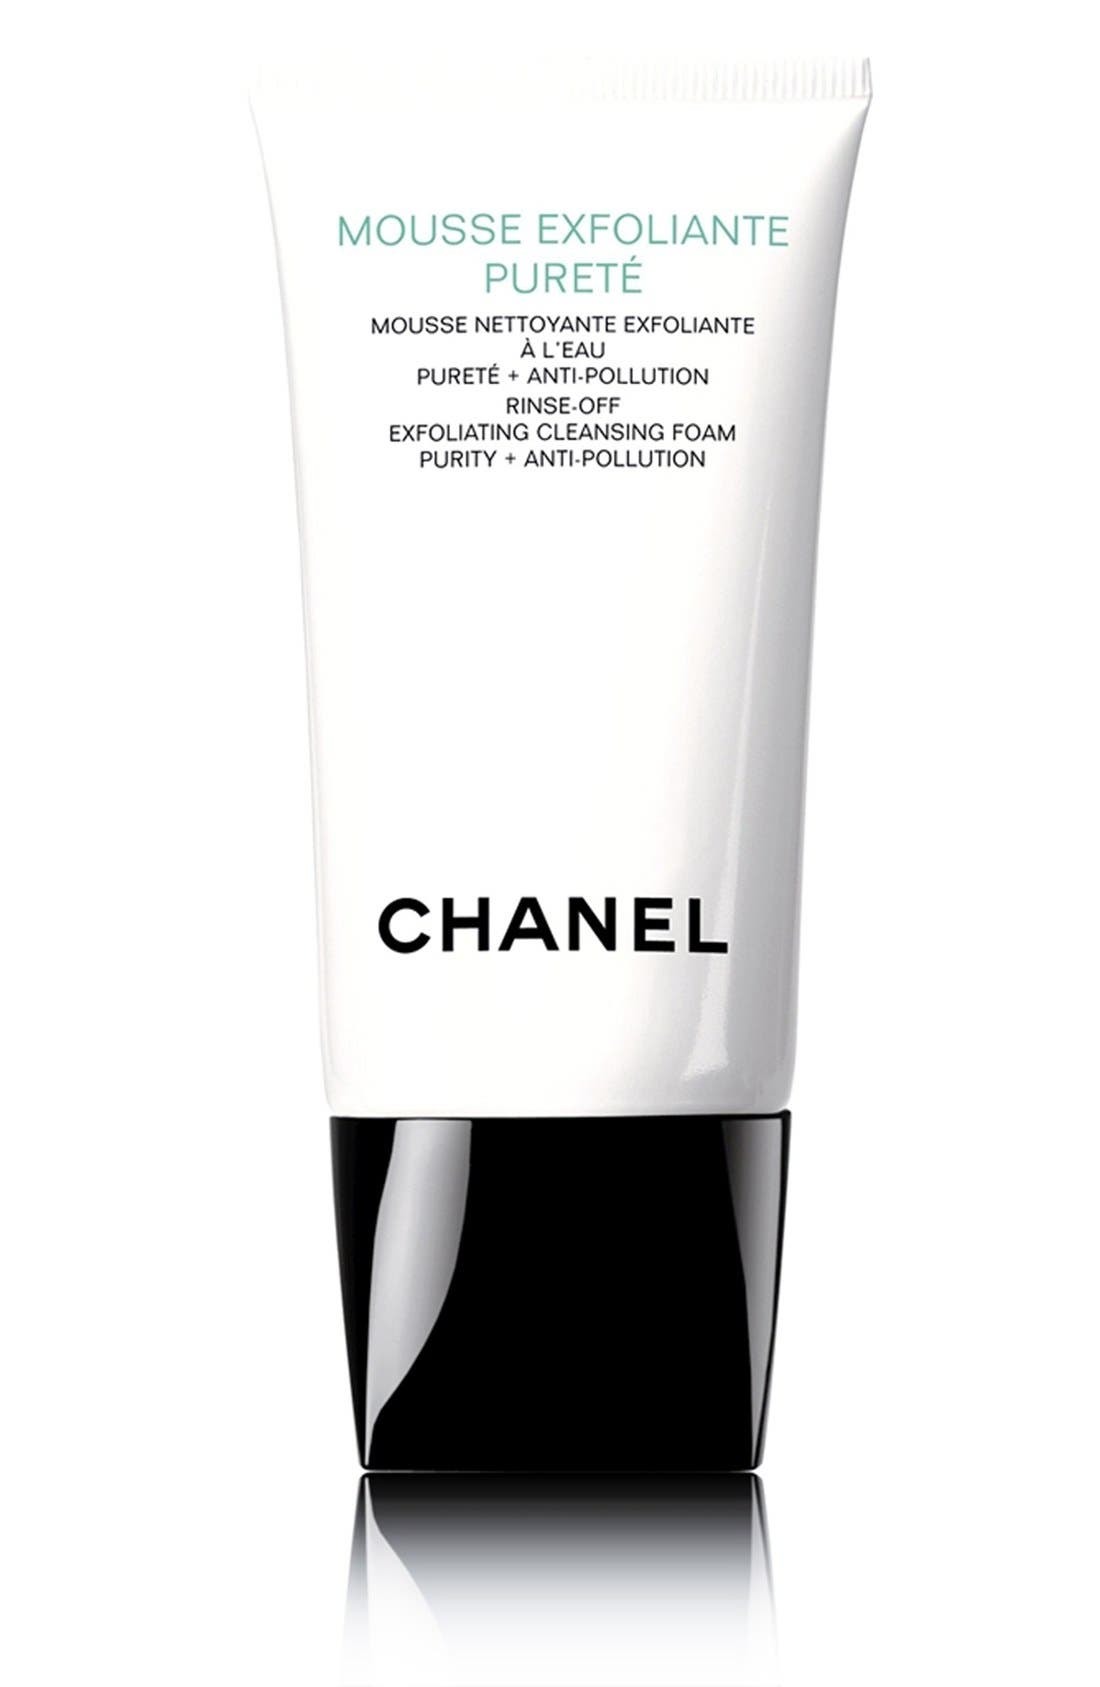 CHANEL MOUSSE EXFOLIANTE PURETÉ 